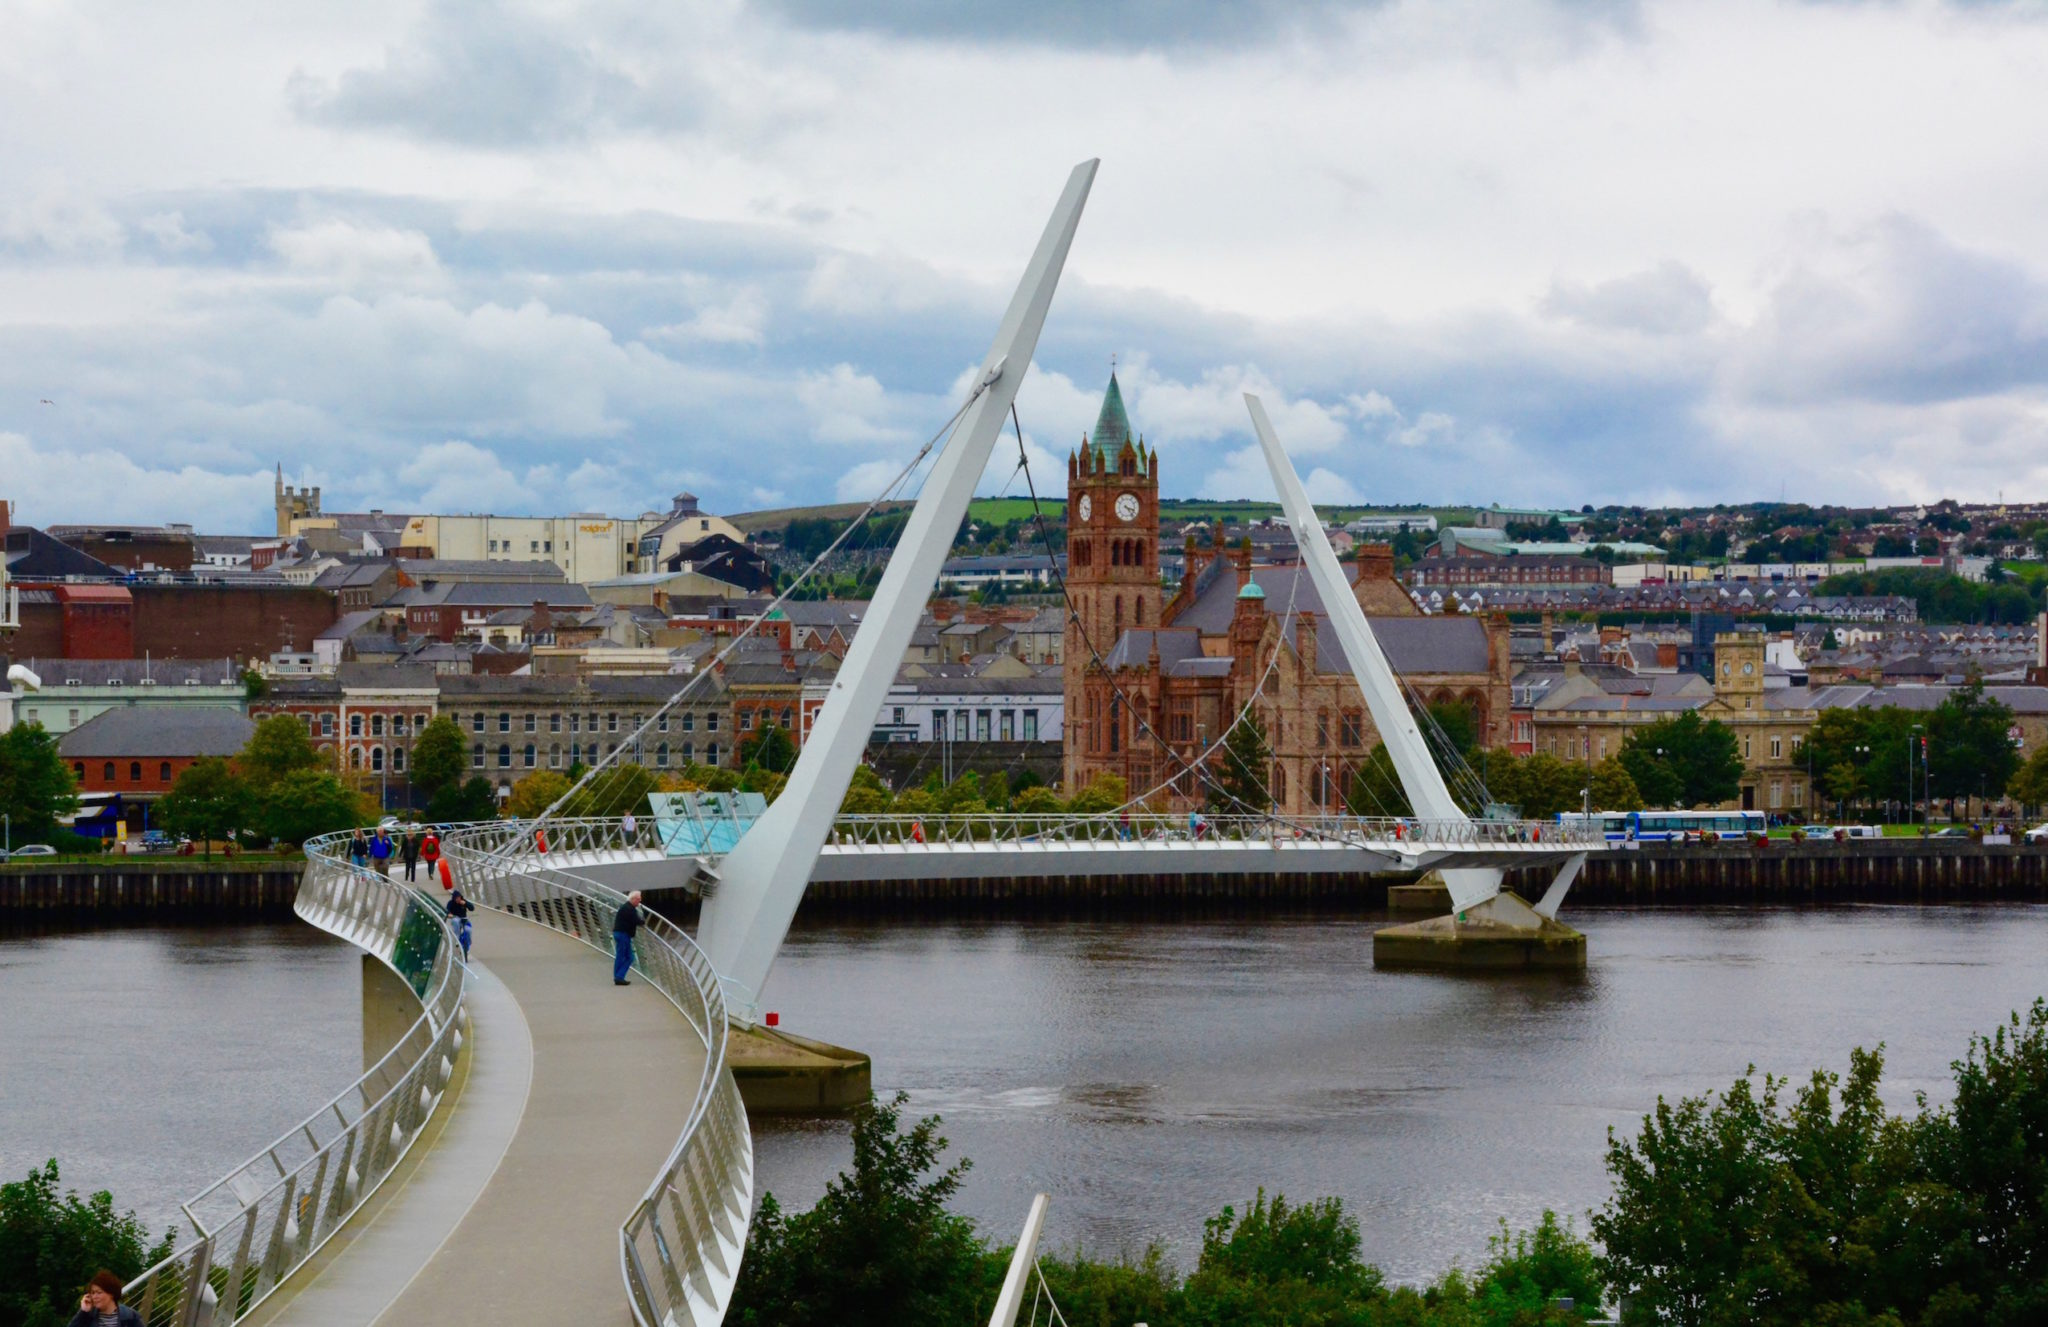 a-lovely-planet-derry